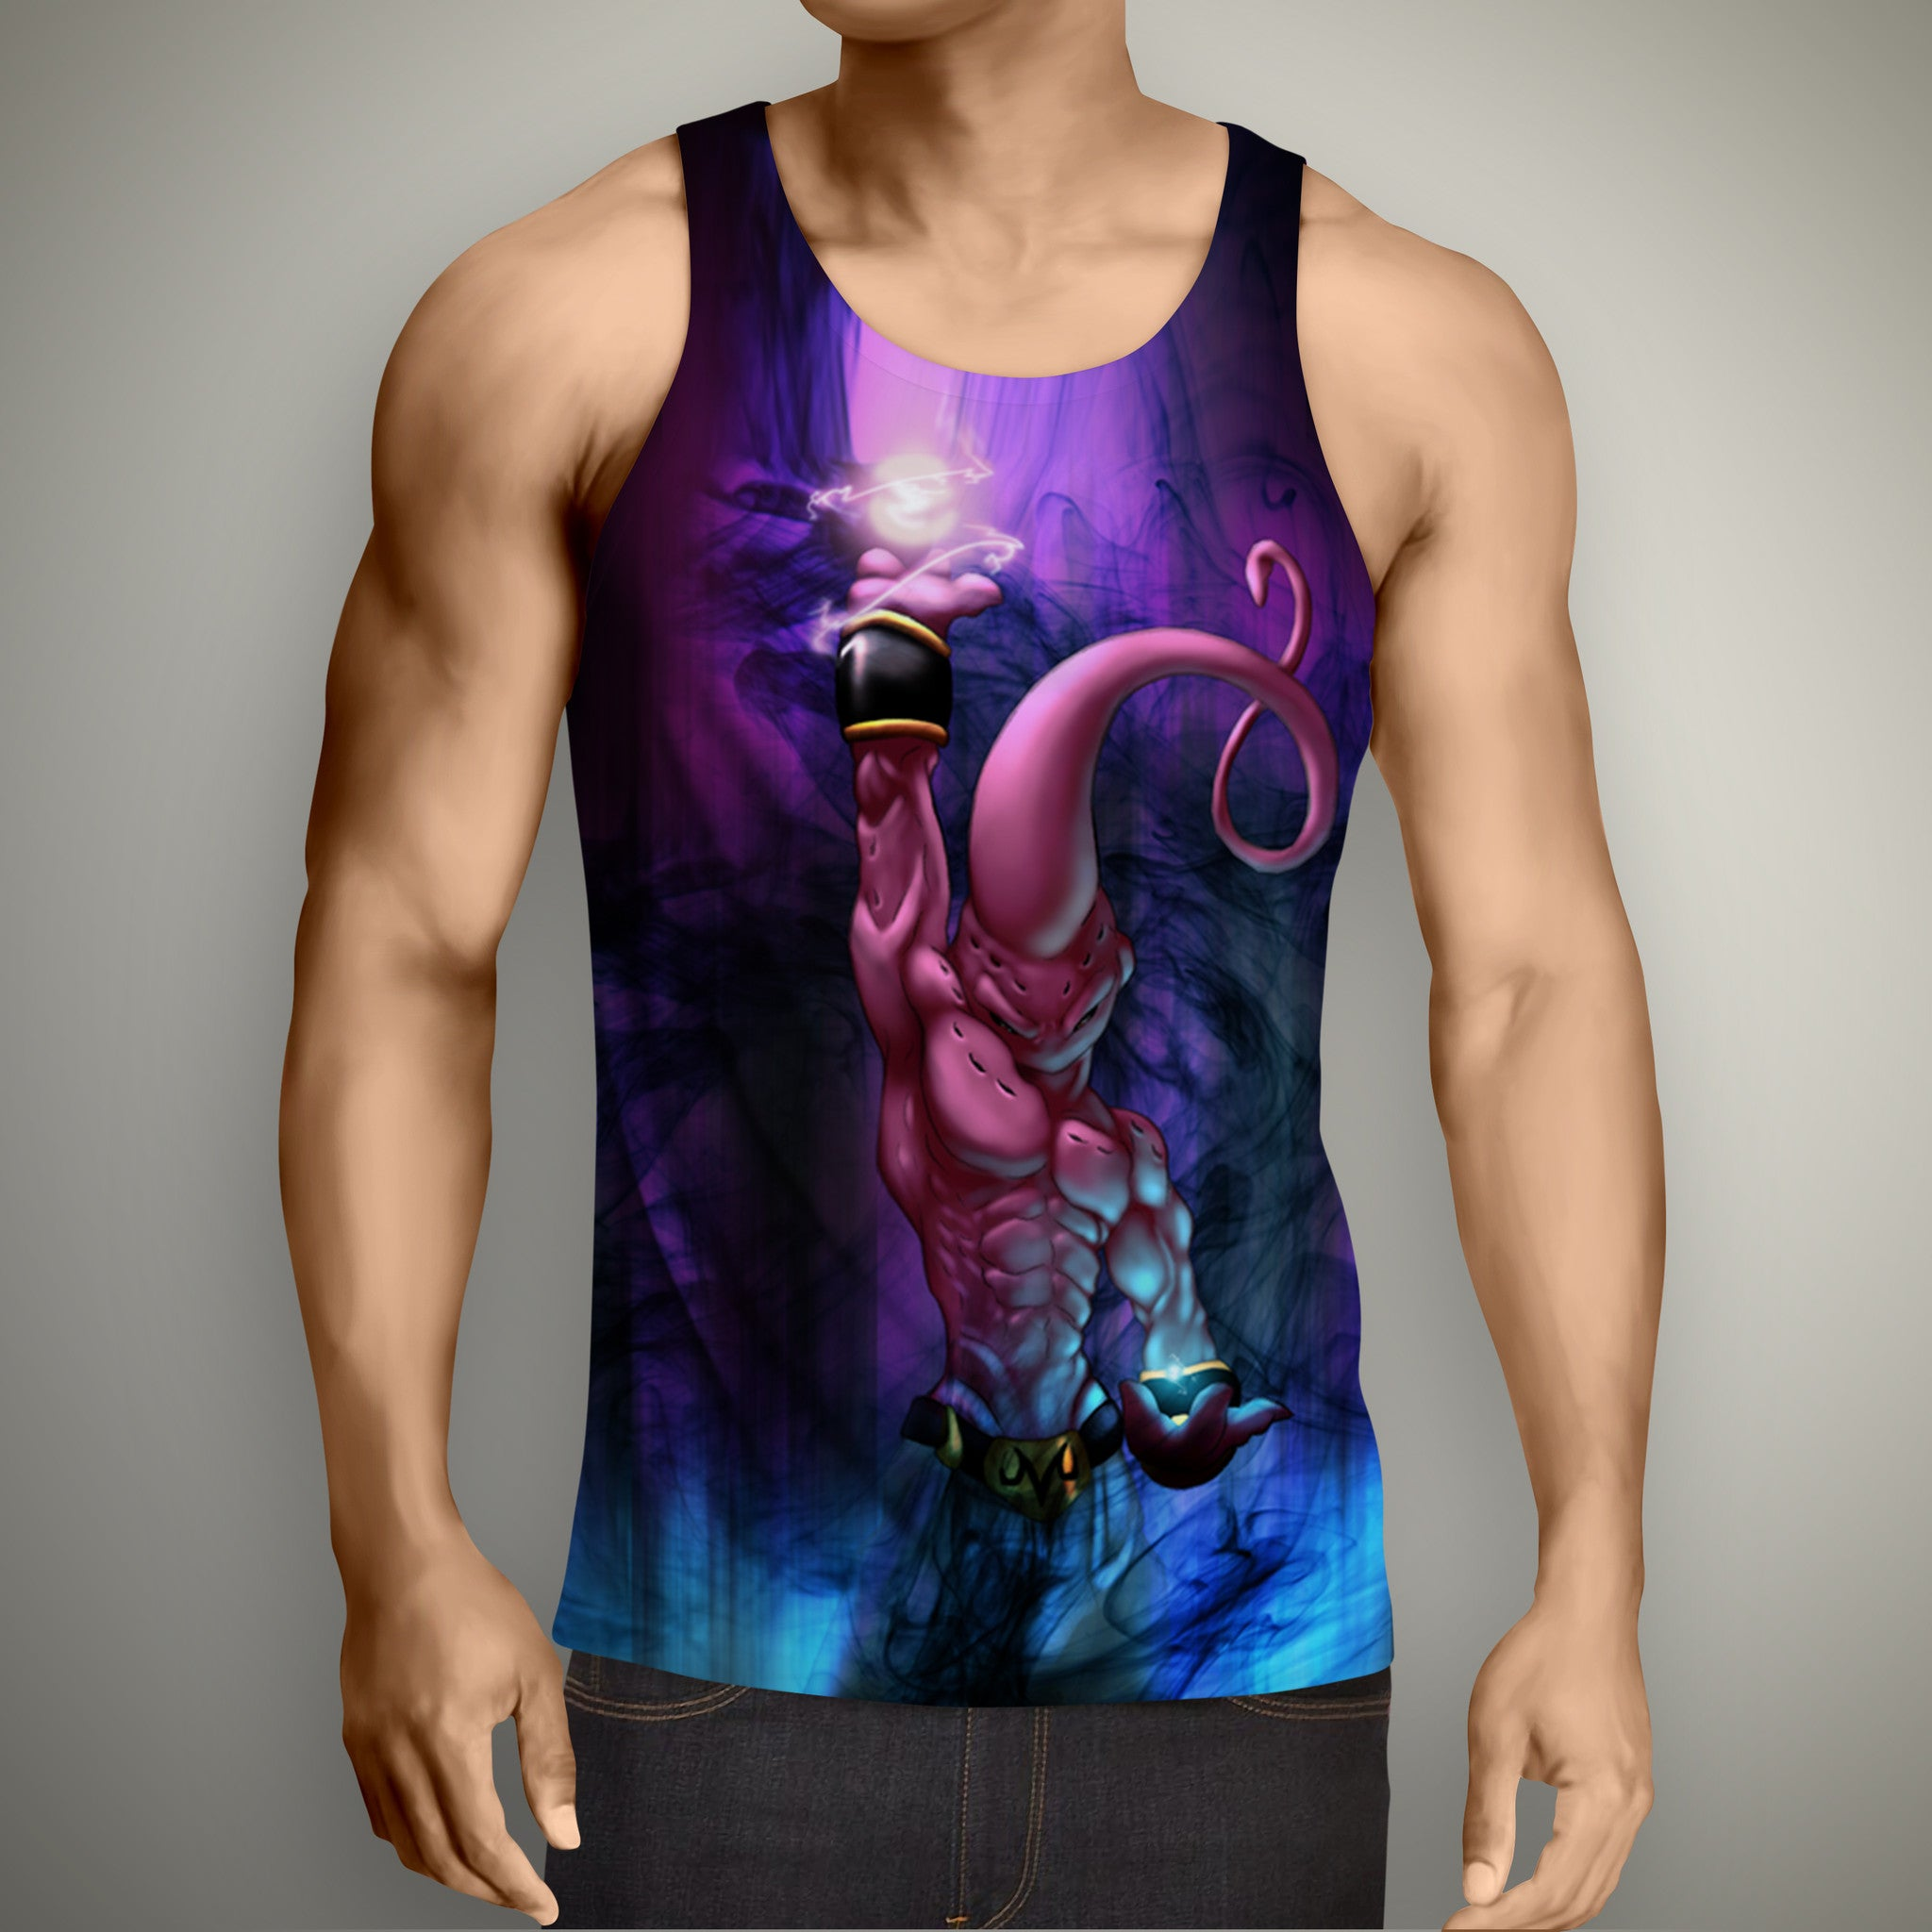 f29e0e51c4e28 Note  These Tank Tops are printed and depending on your screen RGB setting  – colors may vary